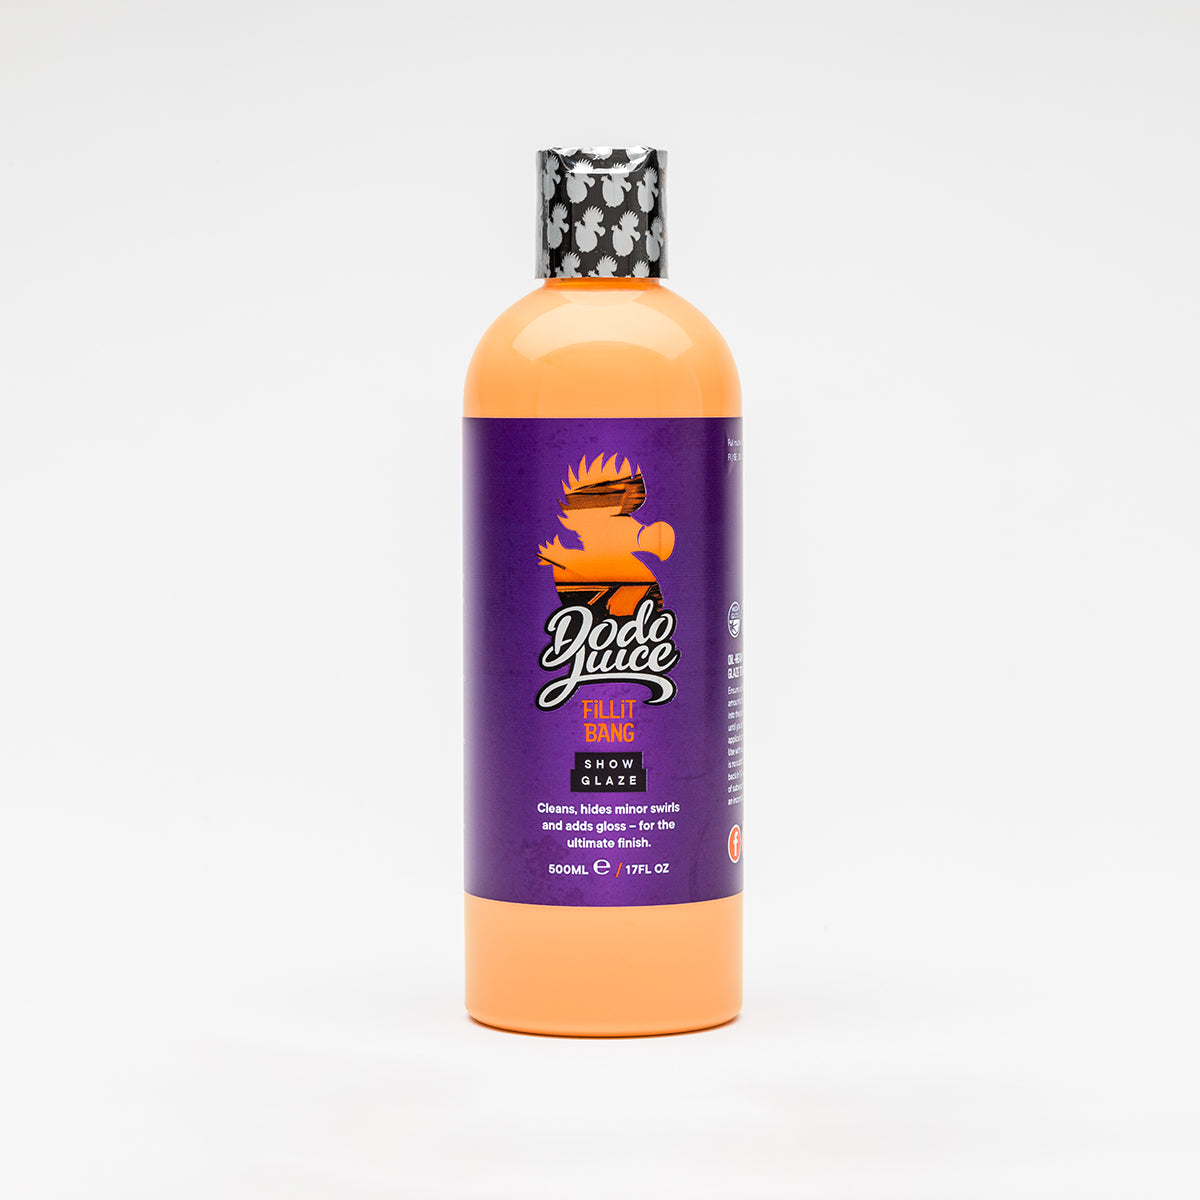 Fillit Bang 500ml - show glaze and pre-wax gloss enhancer